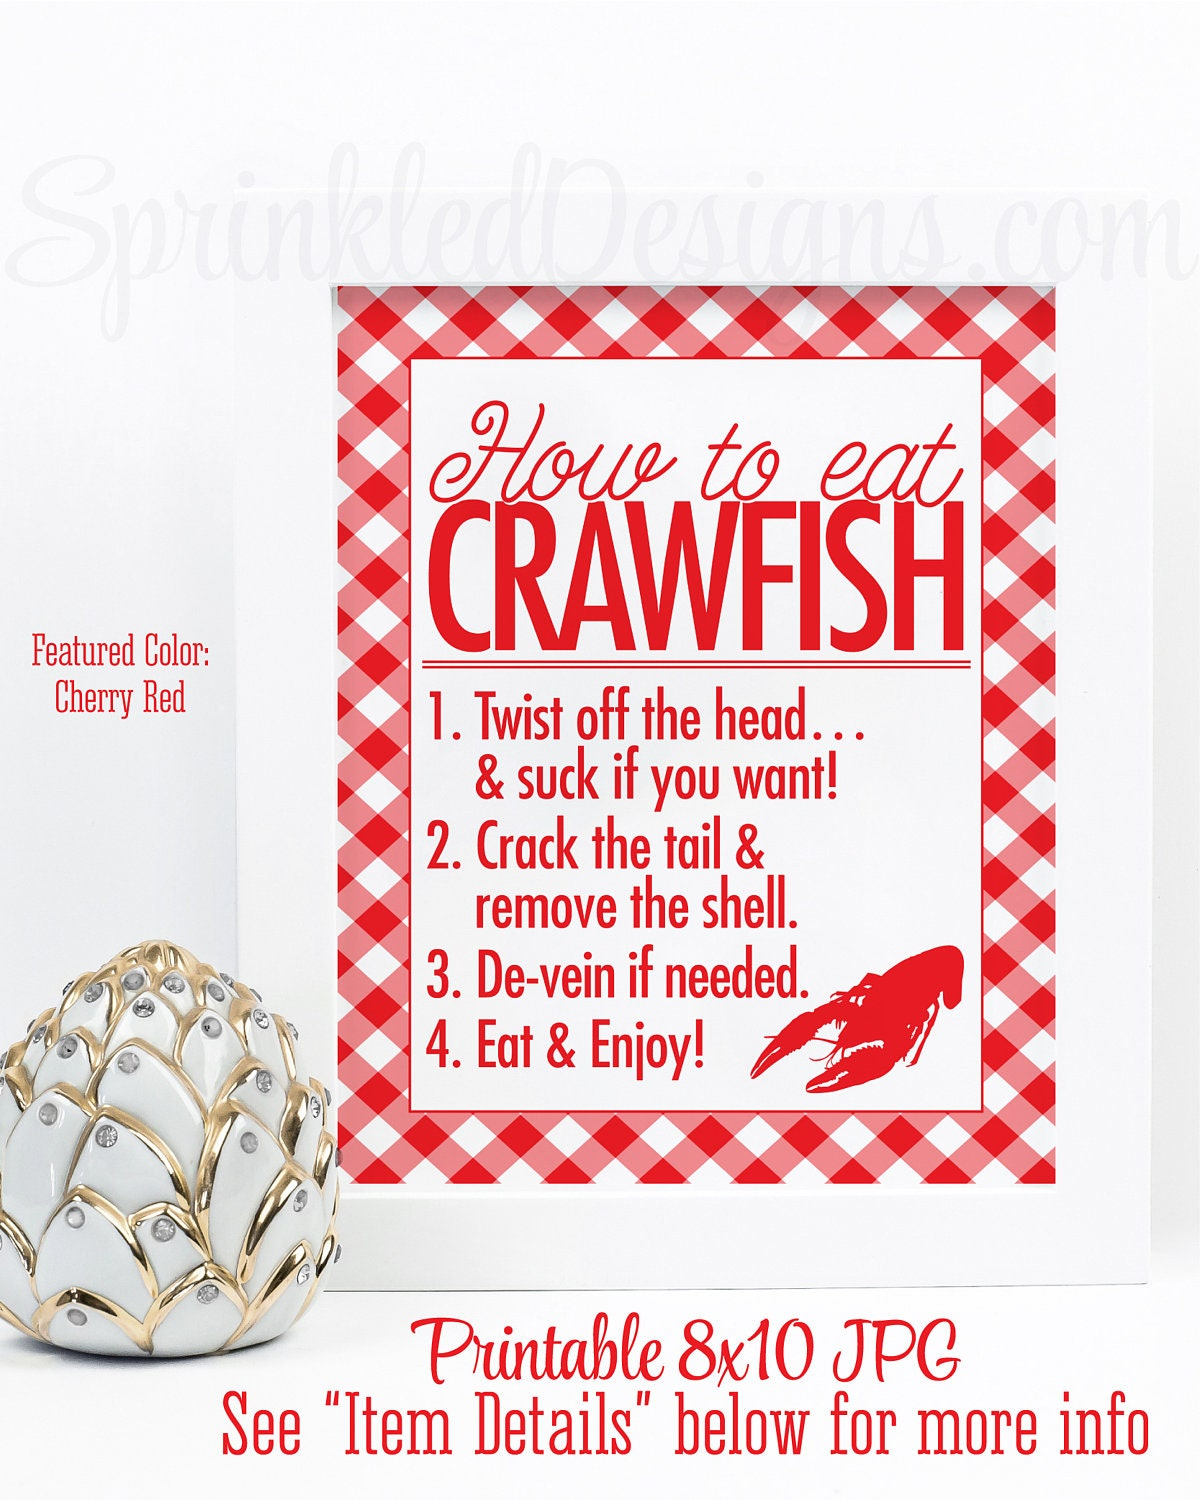 Crawfish Boil Decorations, How To Eat Crawfish Sign, Crawfish Decor,  Graduation Crawfish Boil